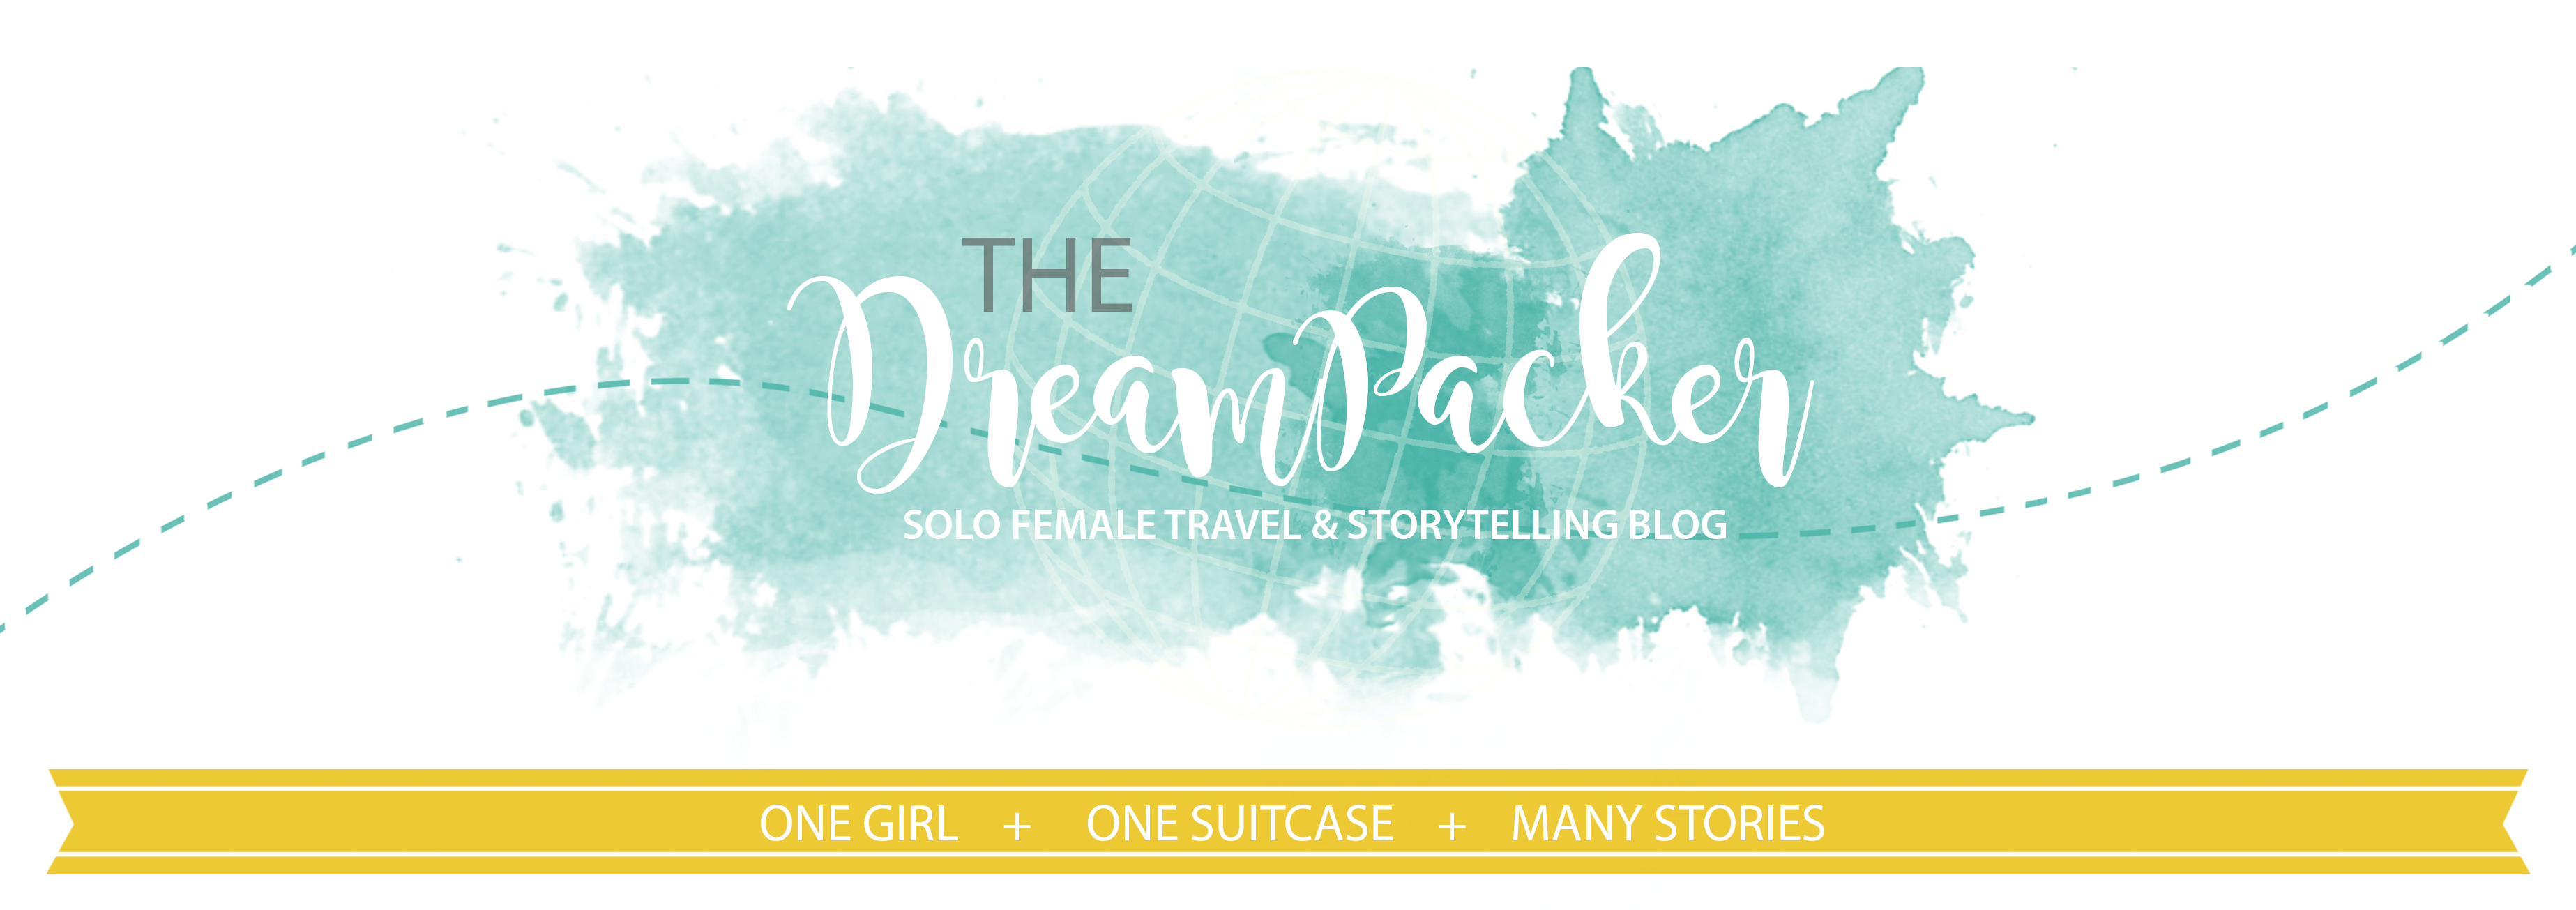 The Dreampacker